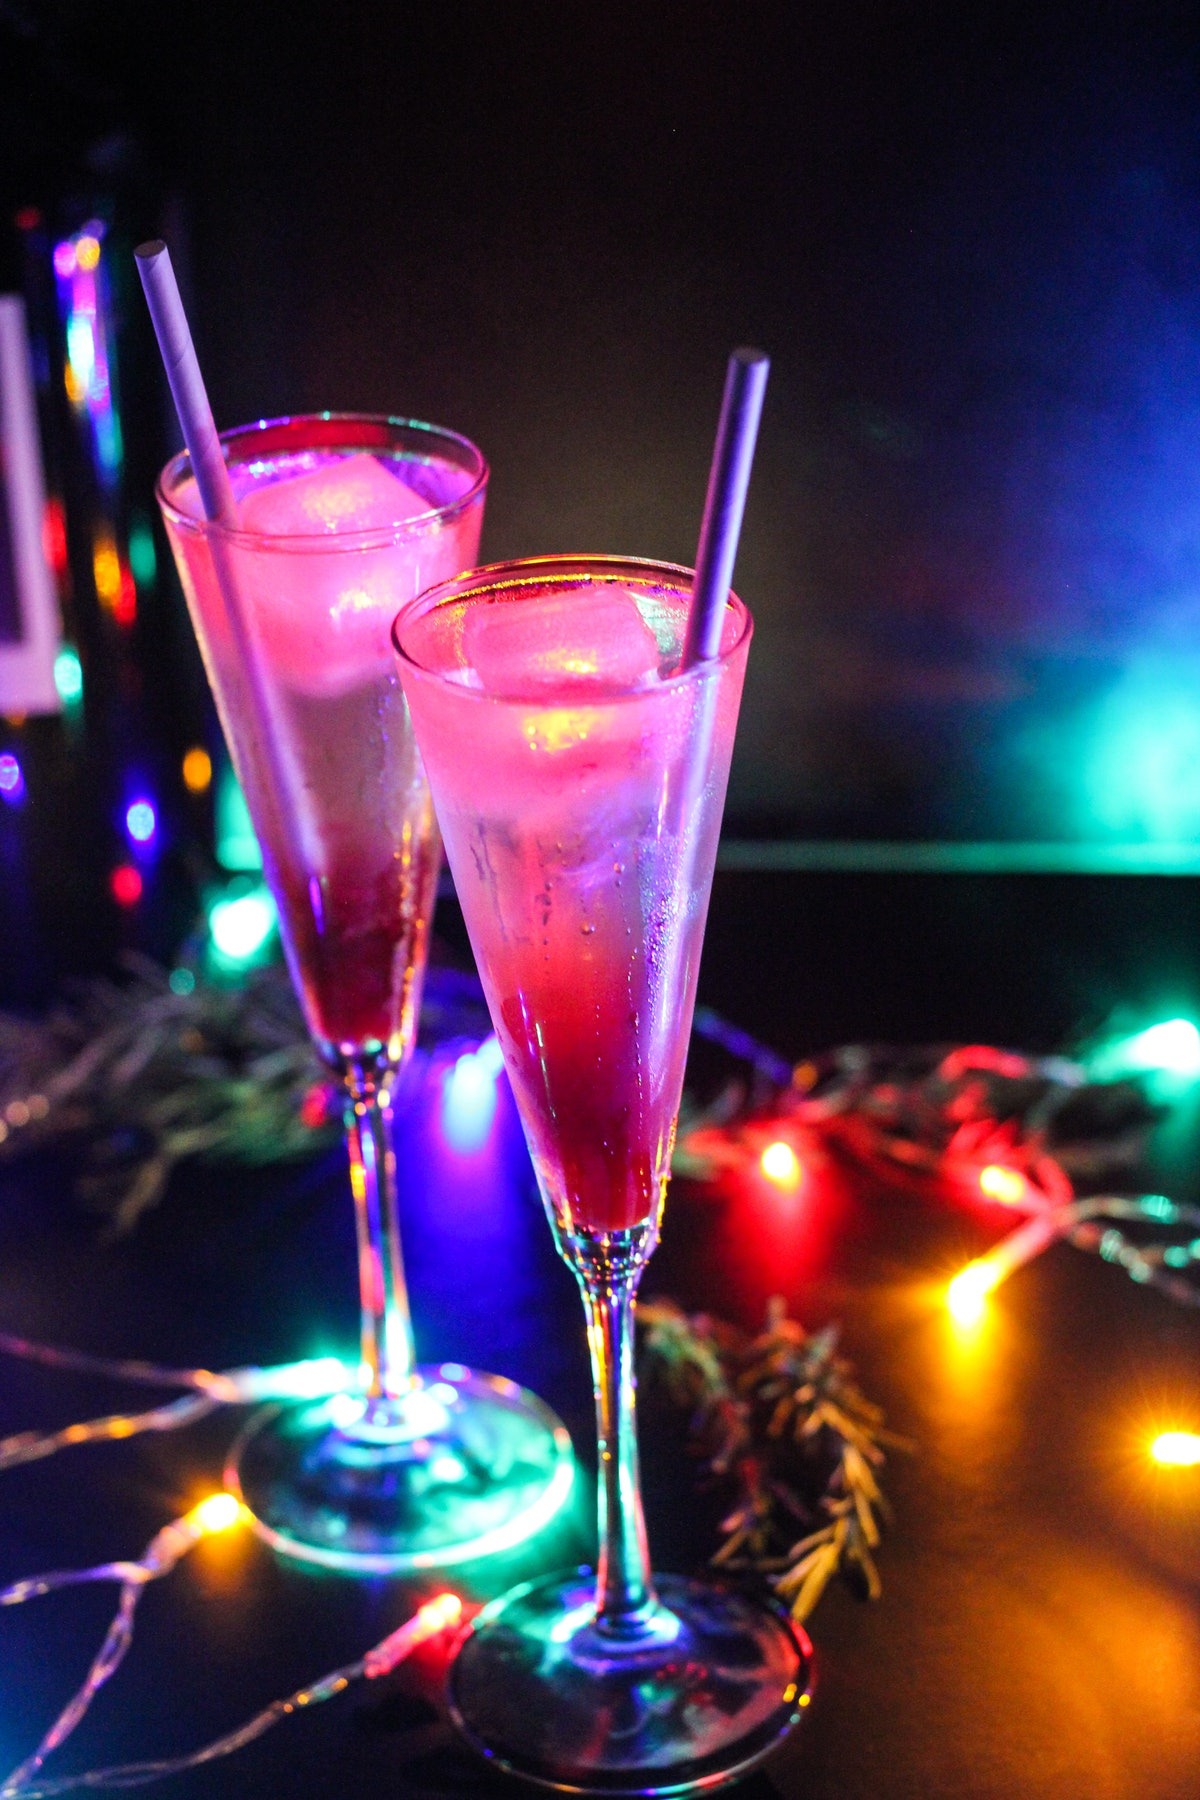 The Glow Spritz cocktail surrounded by Christmas lights is one of the drinks offered at Disneyland a...